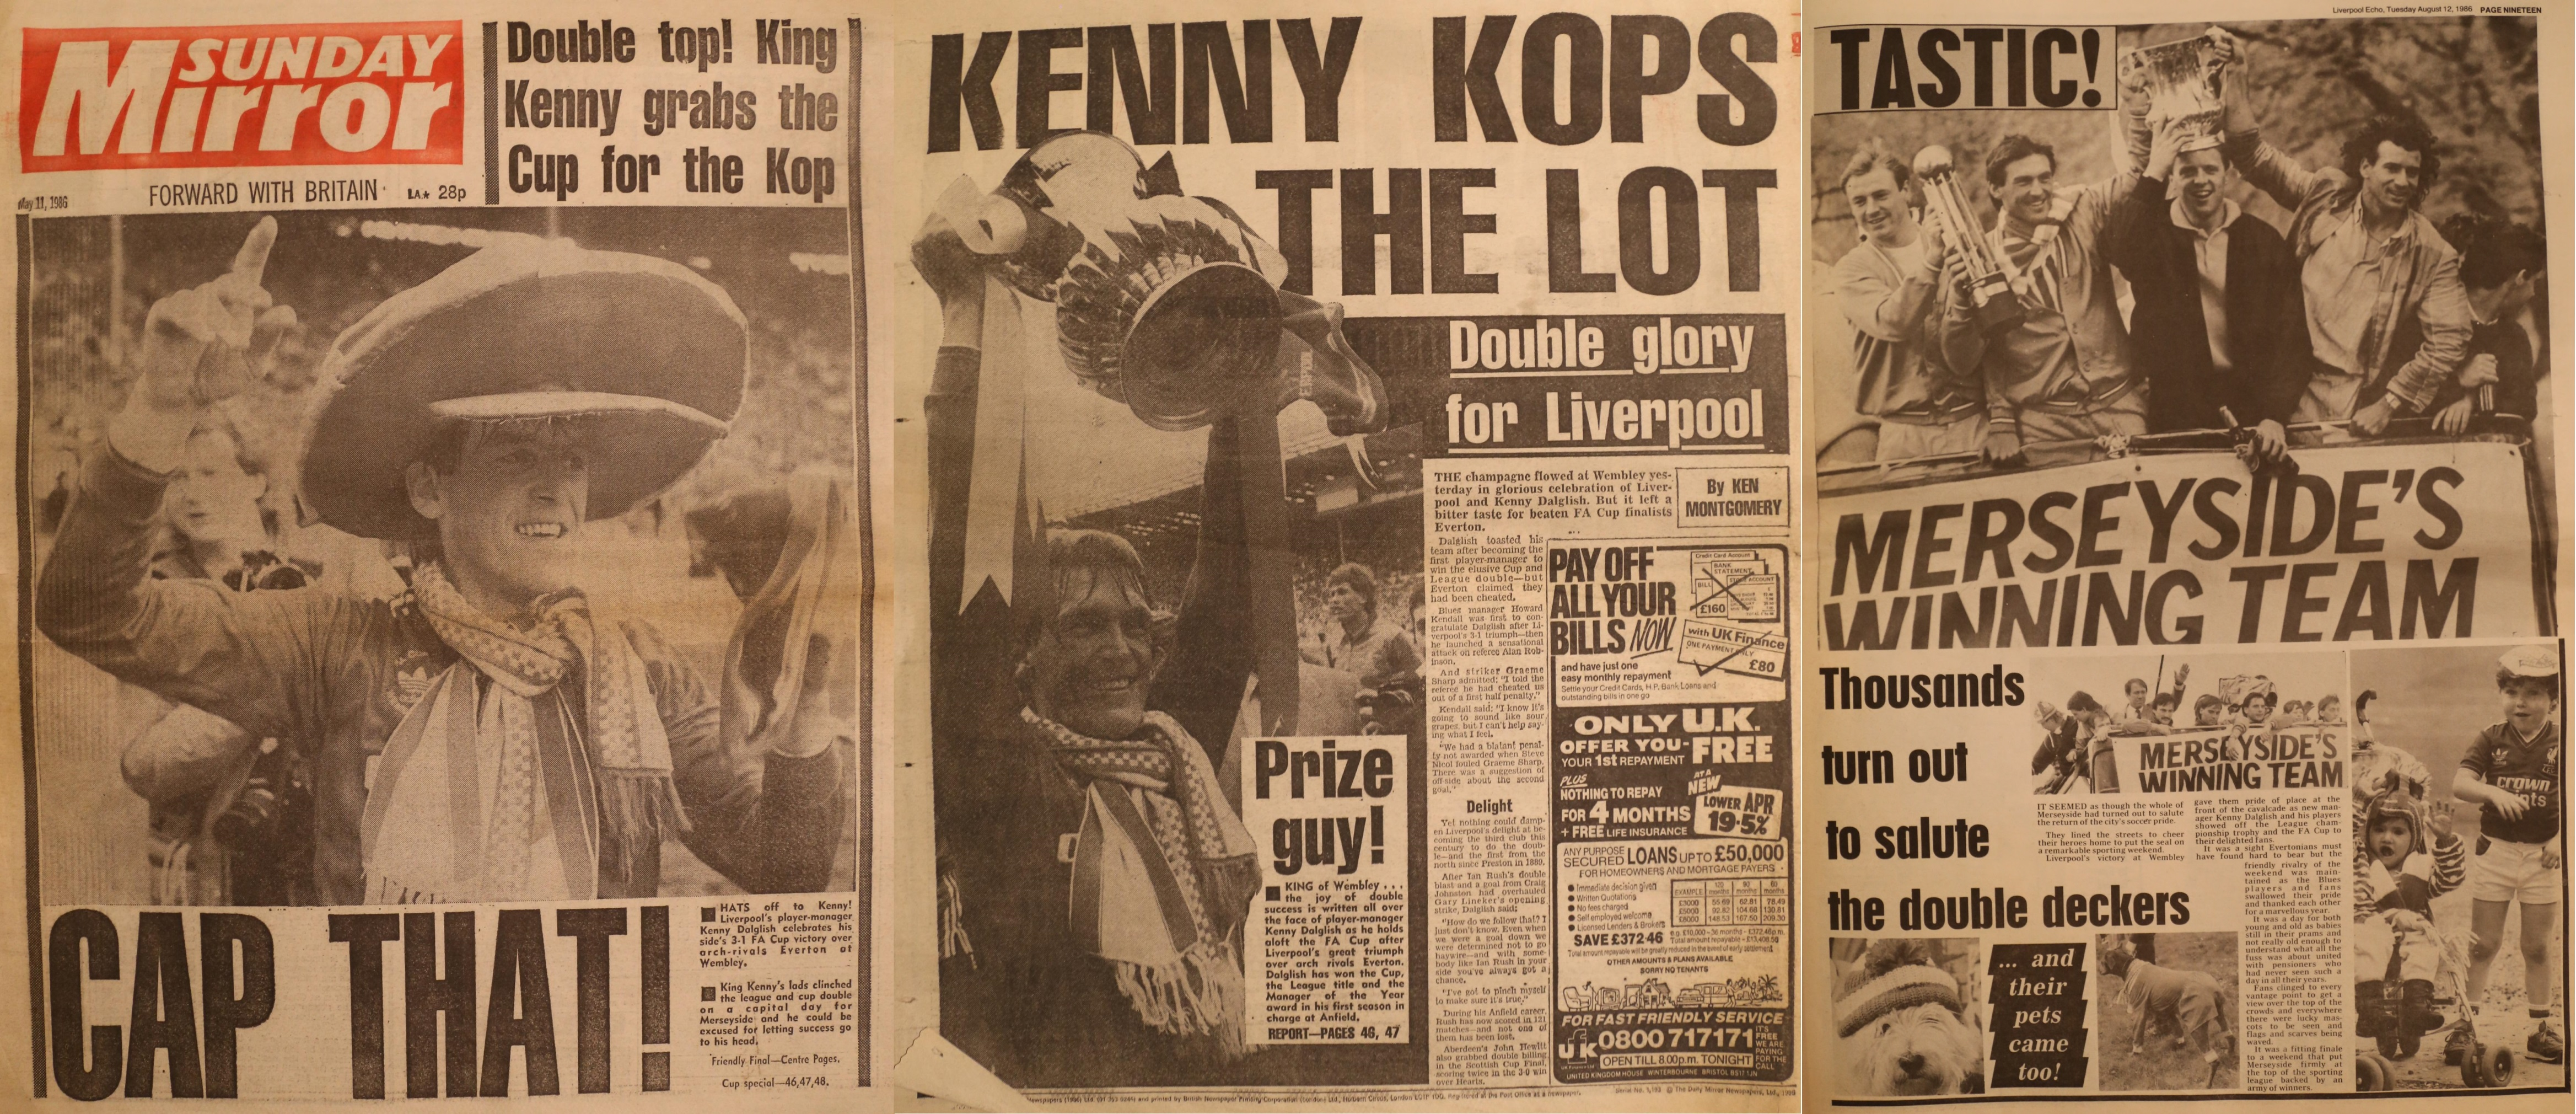 Kenny kops the lot! - Sunday Mirror 10 May 1986